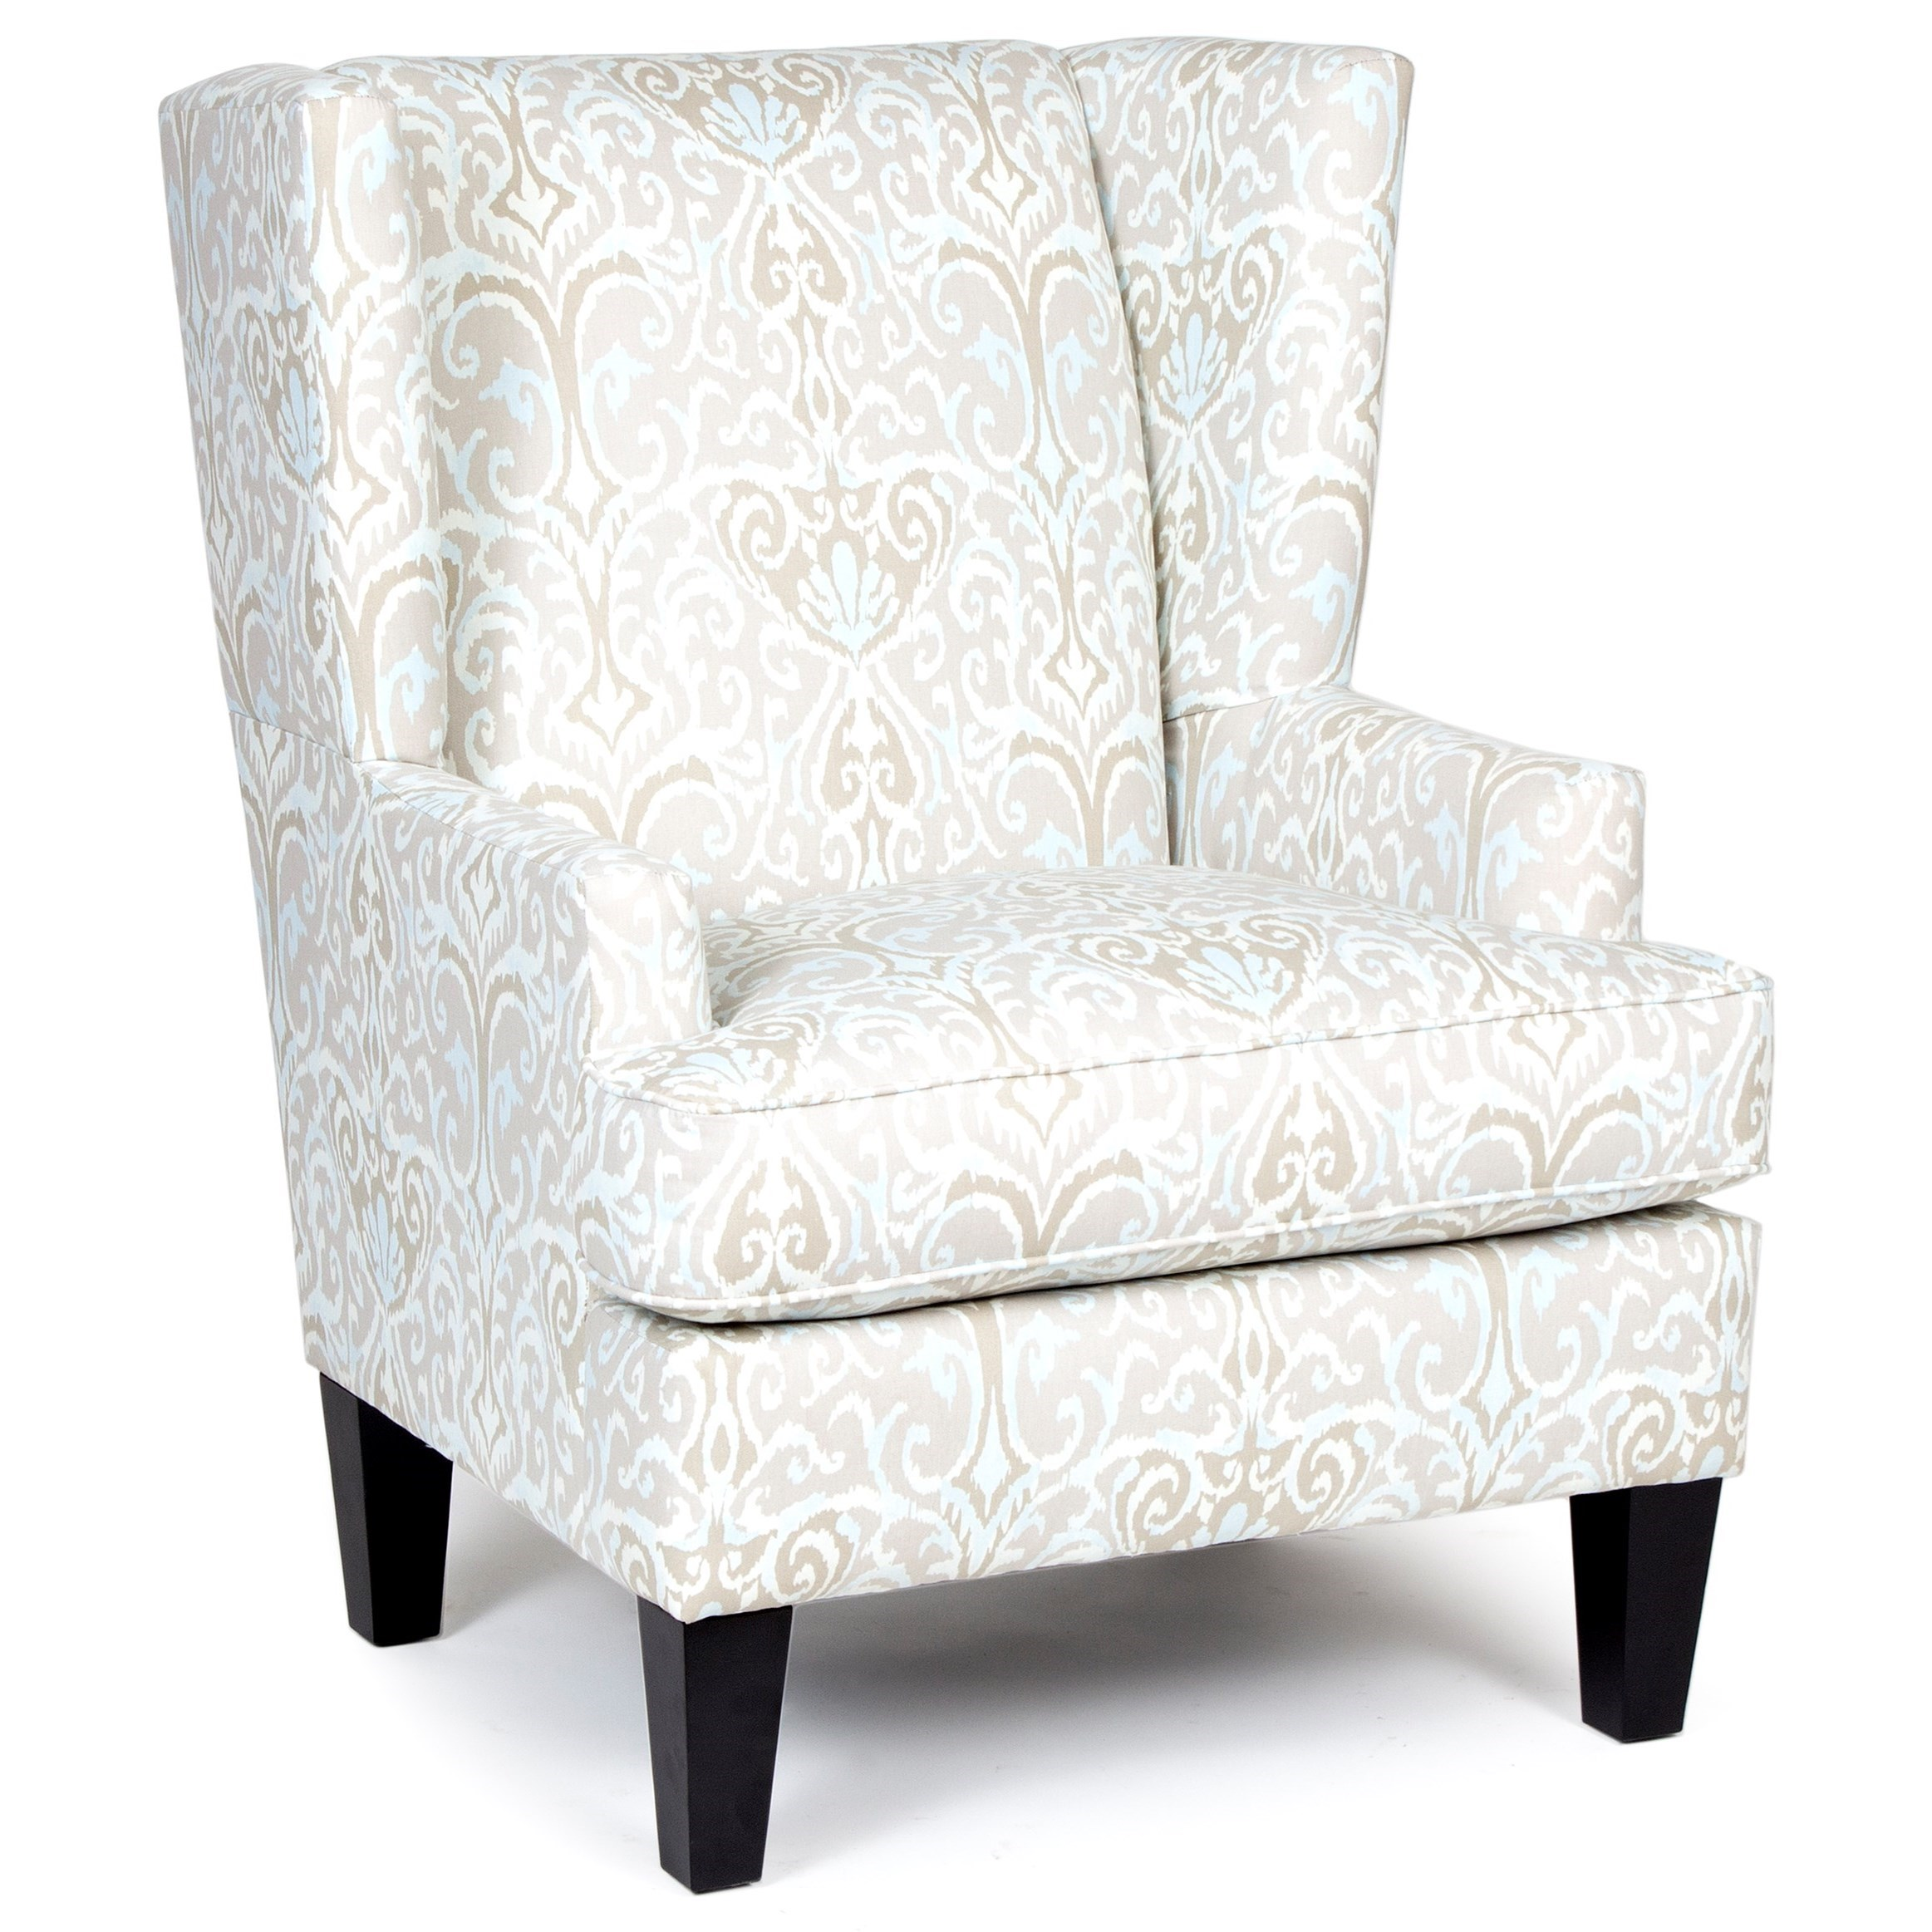 Chairs America Accent Chairs and Ottomans Transitional Wing Chair - Item Number: 1567WD